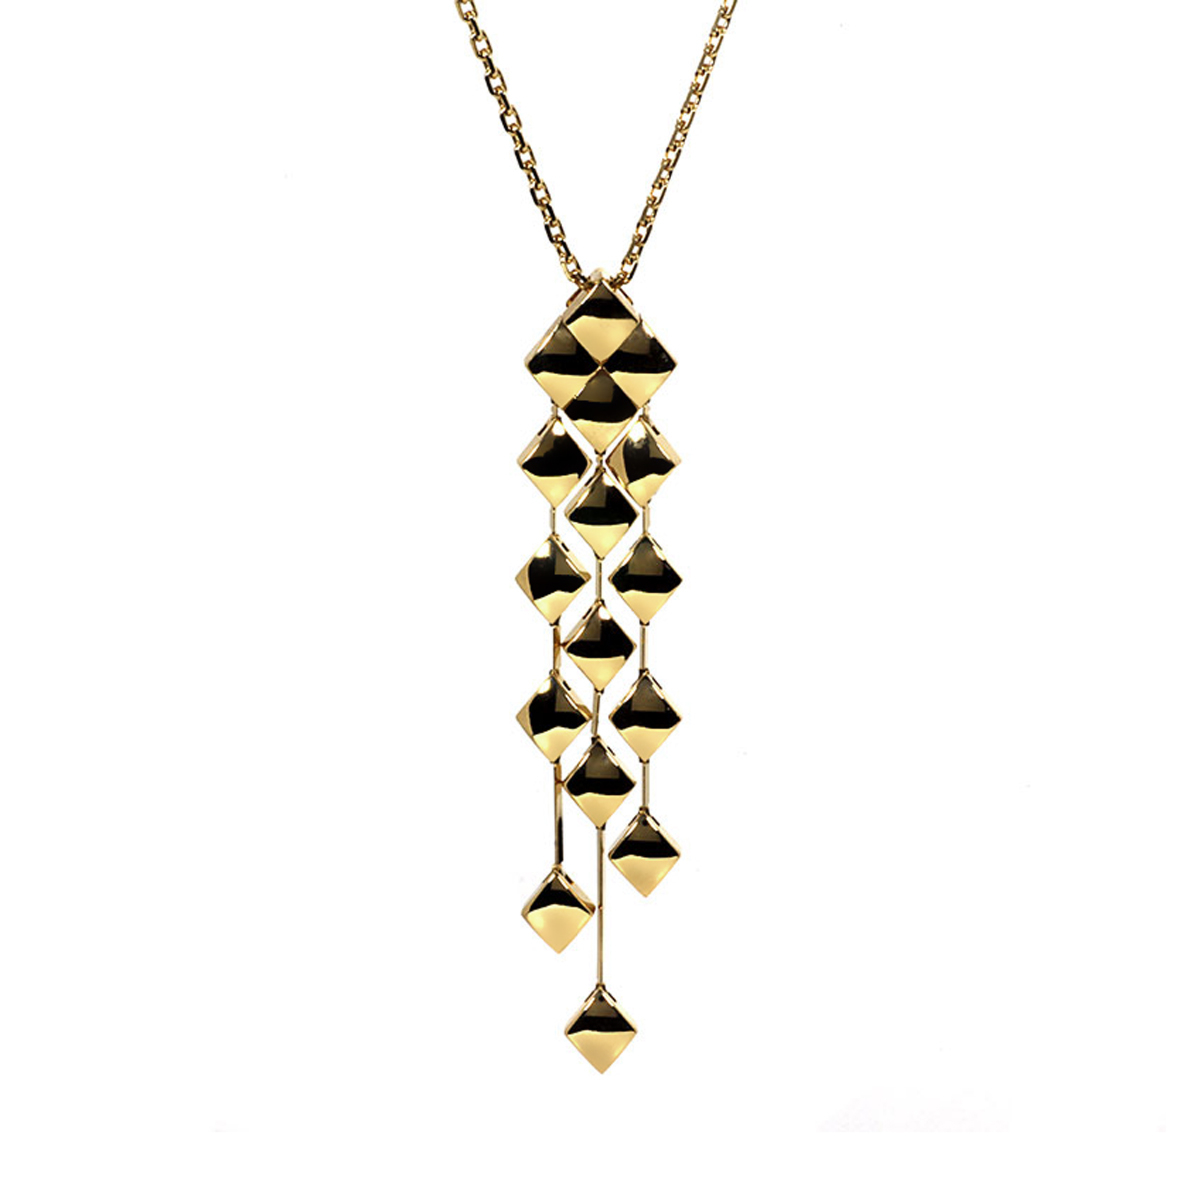 Chanel Matelasse Yellow Gold Quilted Necklace - Chanel Jewelry